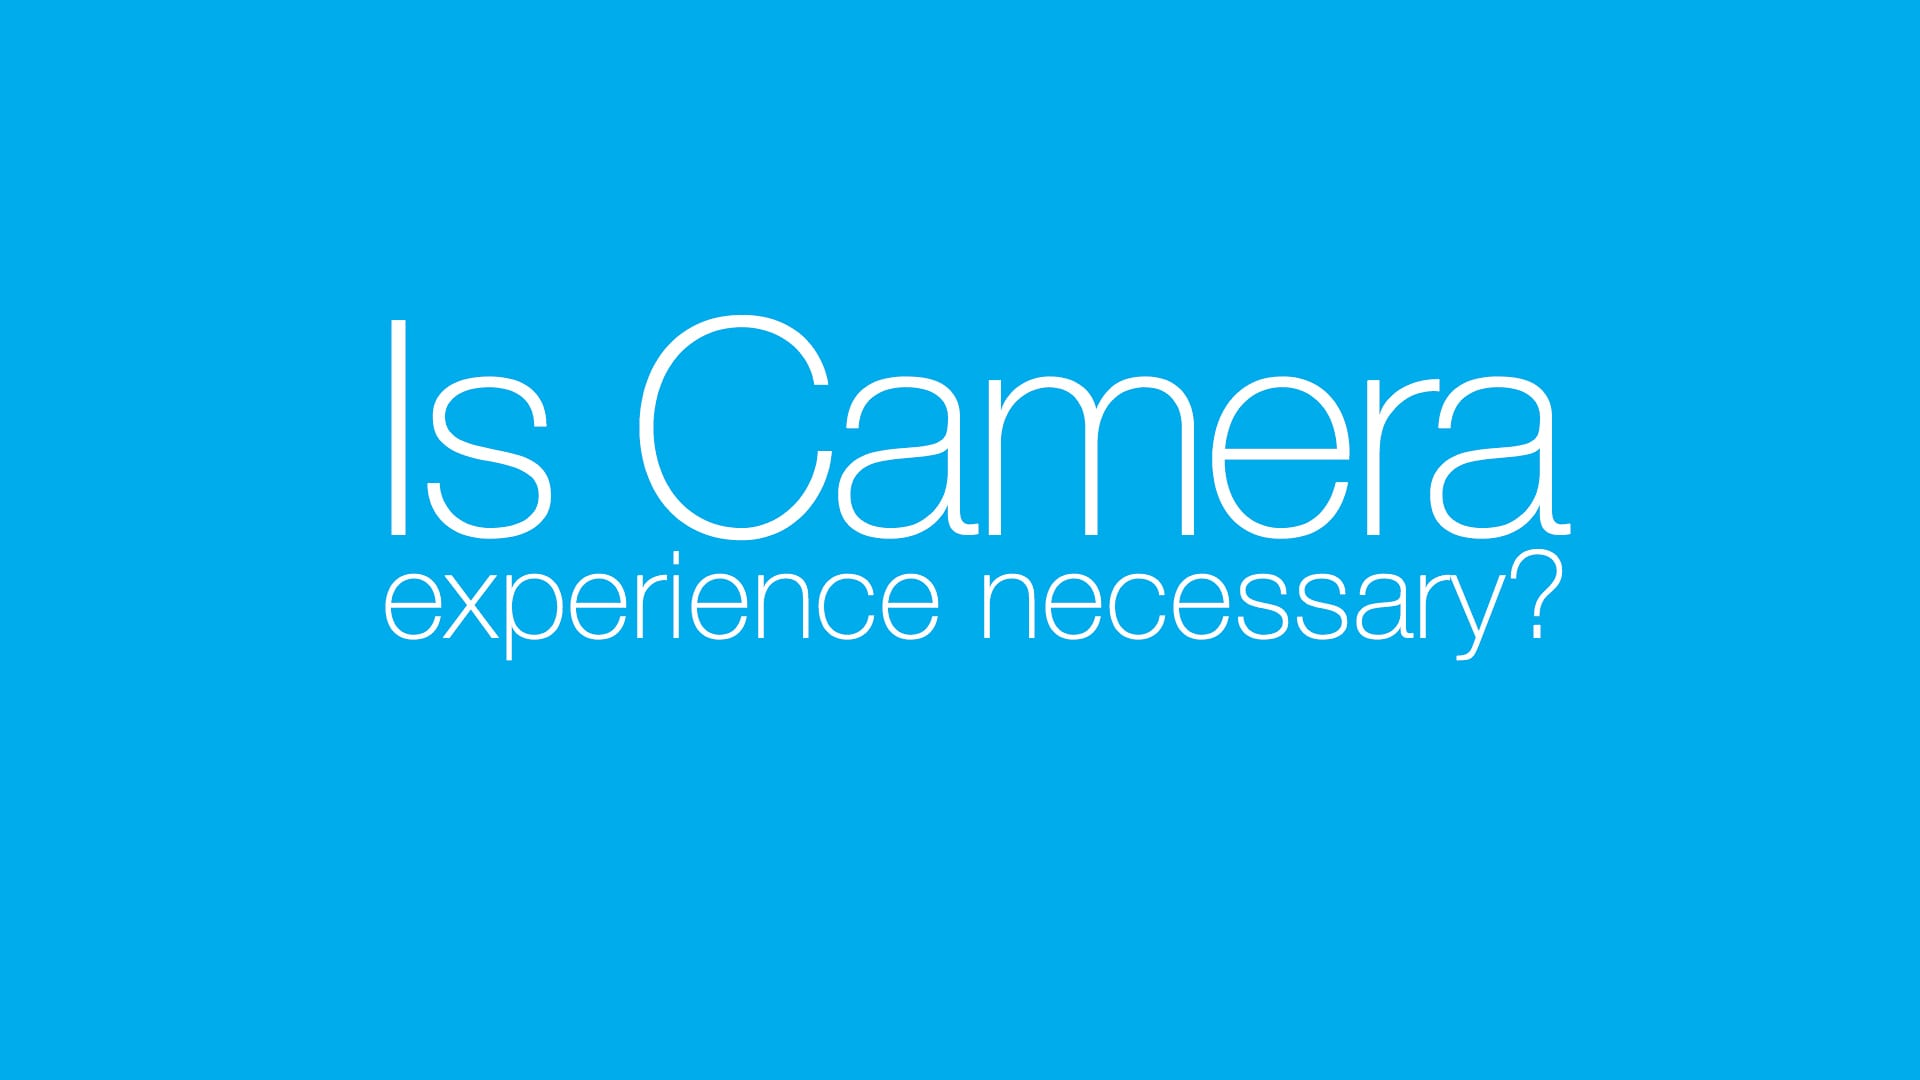 Is camera experience required for Corporate Video?